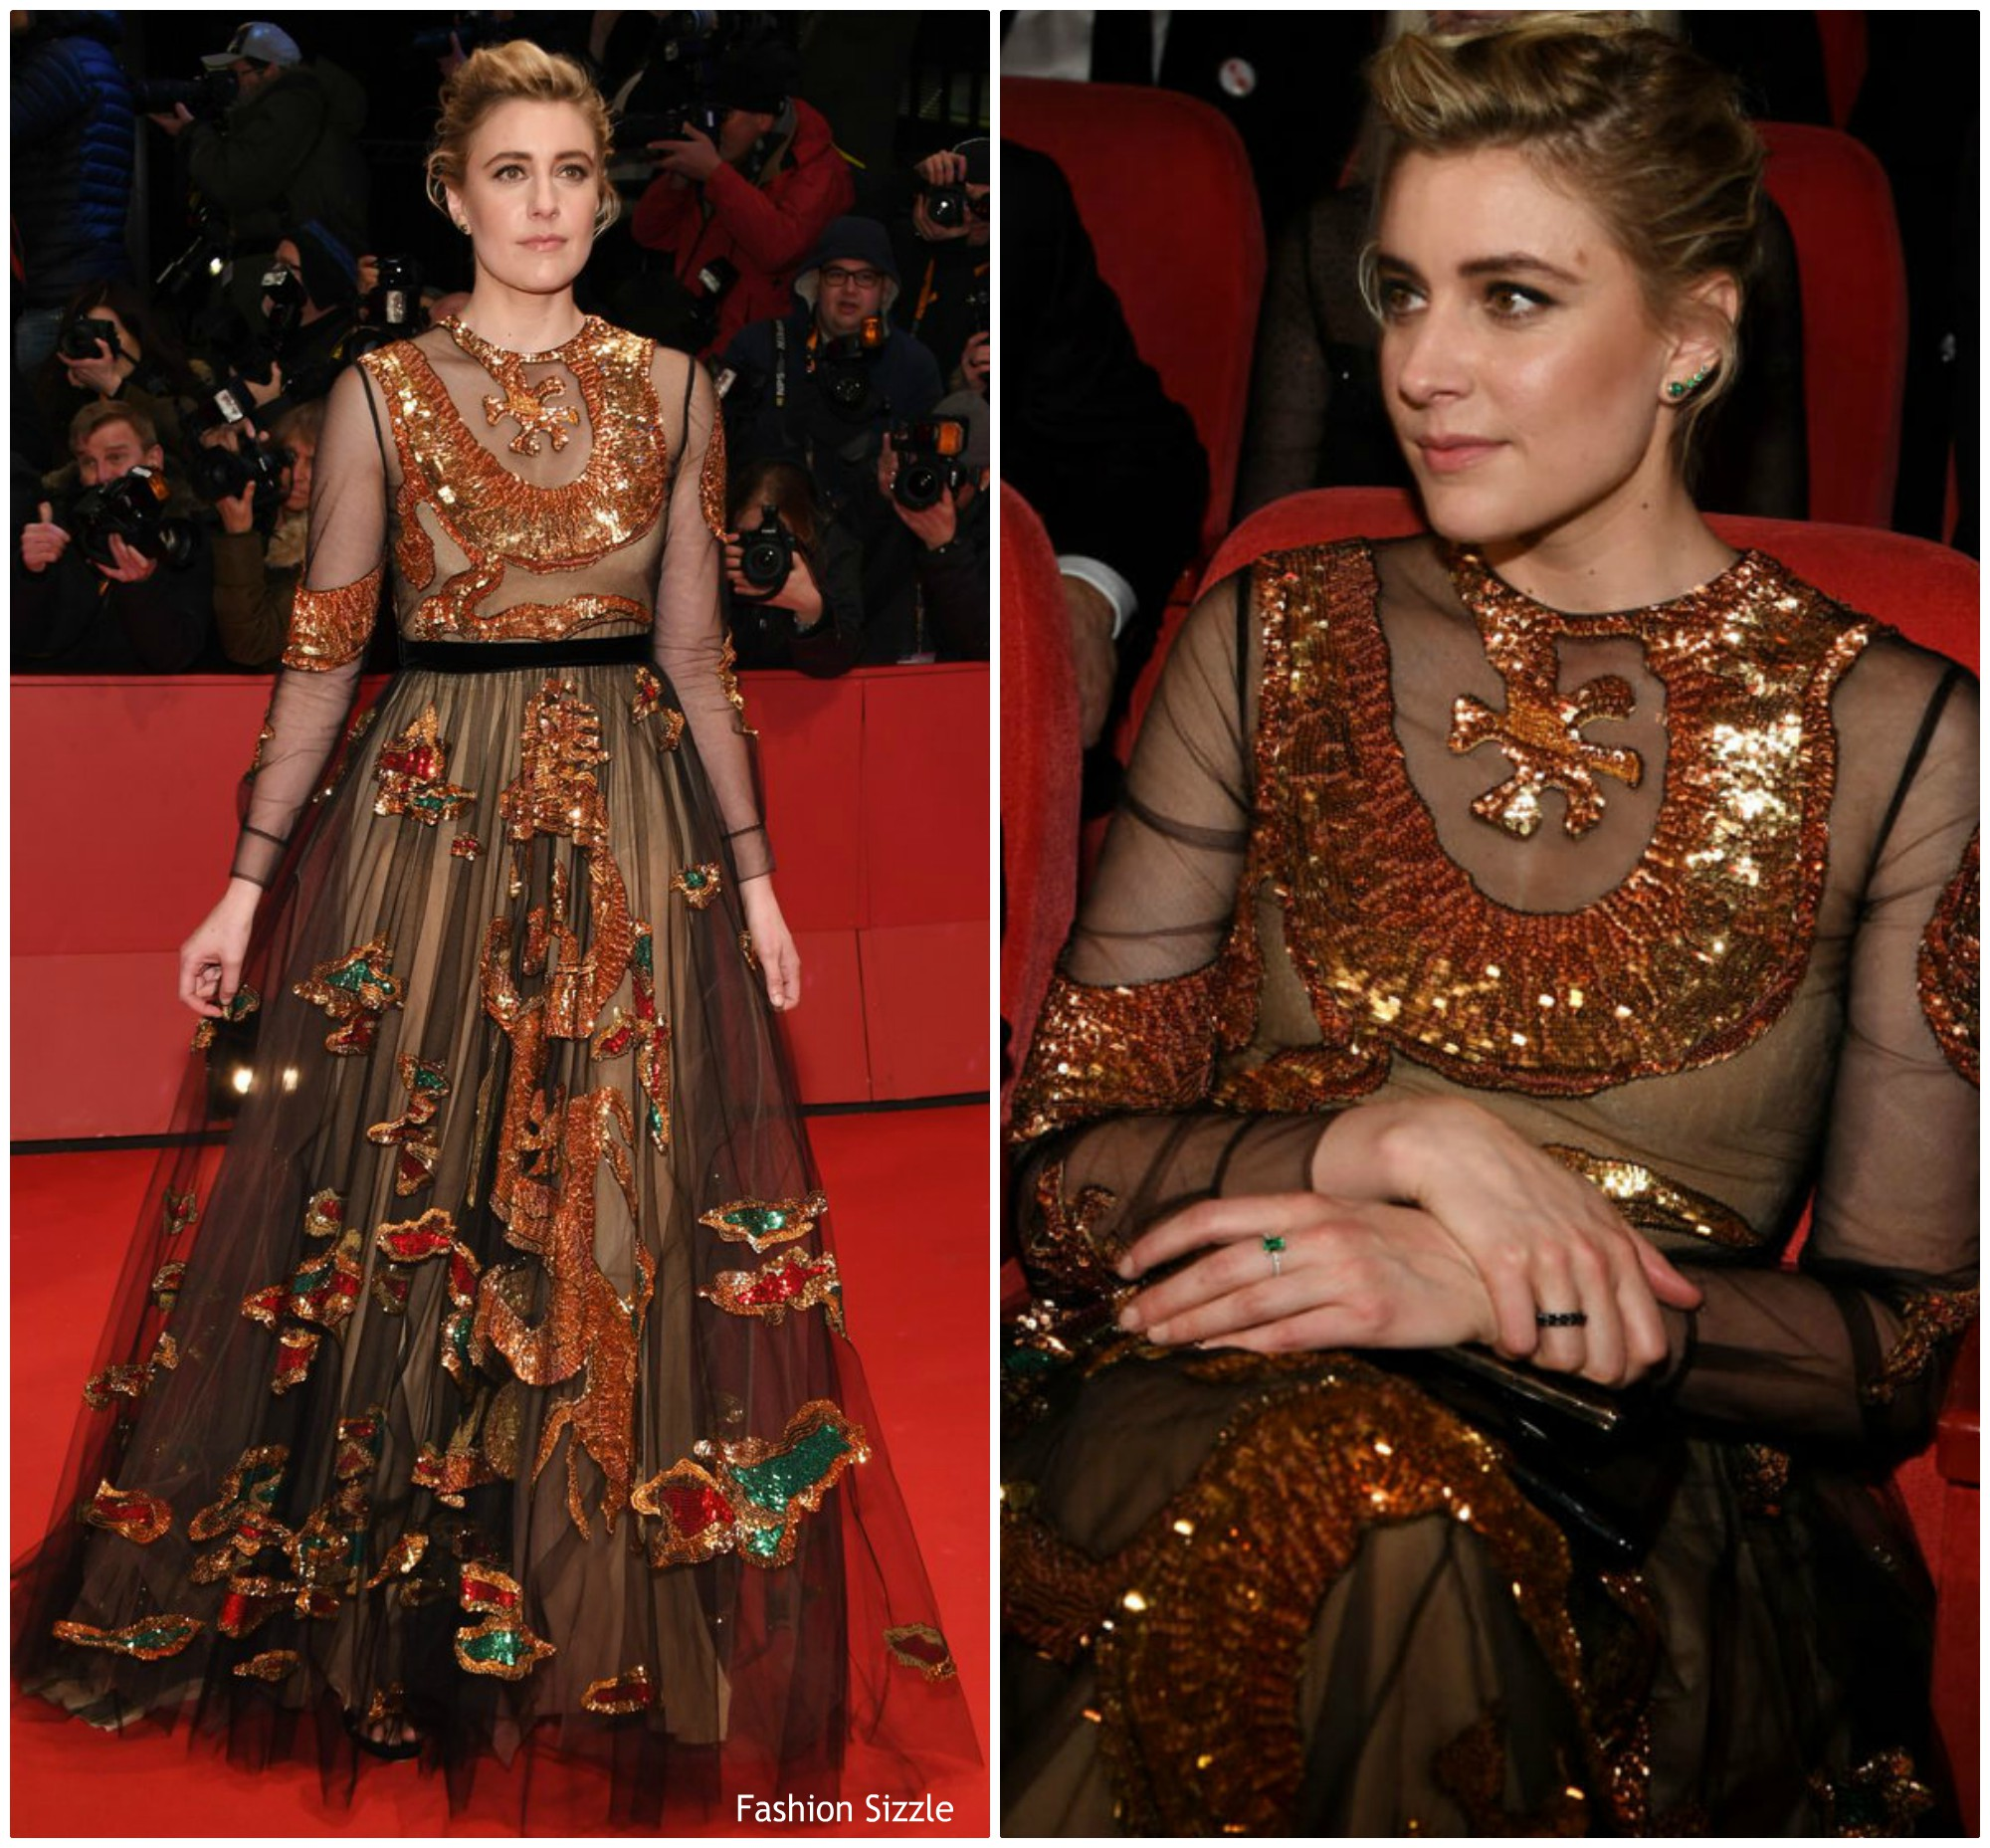 greta-gerwig-in-valentino-isle-of-dogs-berlinale-film-festival-premiere-opening-ceremony